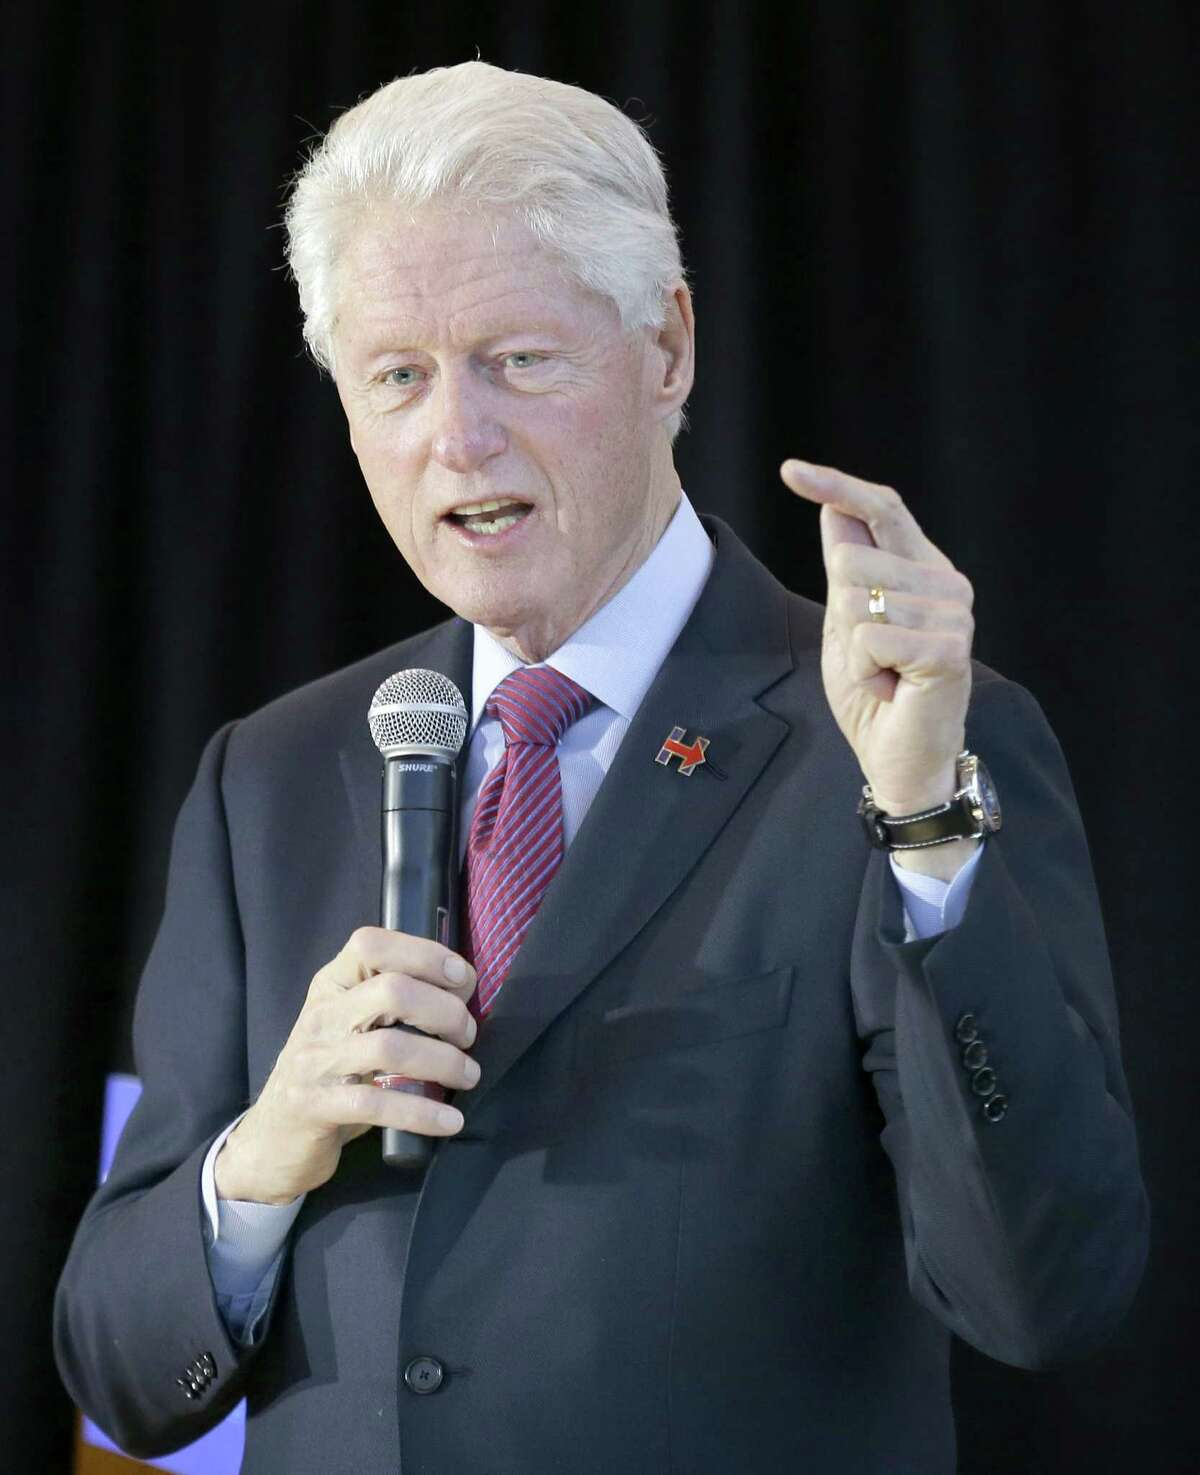 Bubba Clinton Maybe the governor of Arkansas seemed like a Bubba, but the globe-trotting statesman and possible first gentleman? Not so much.